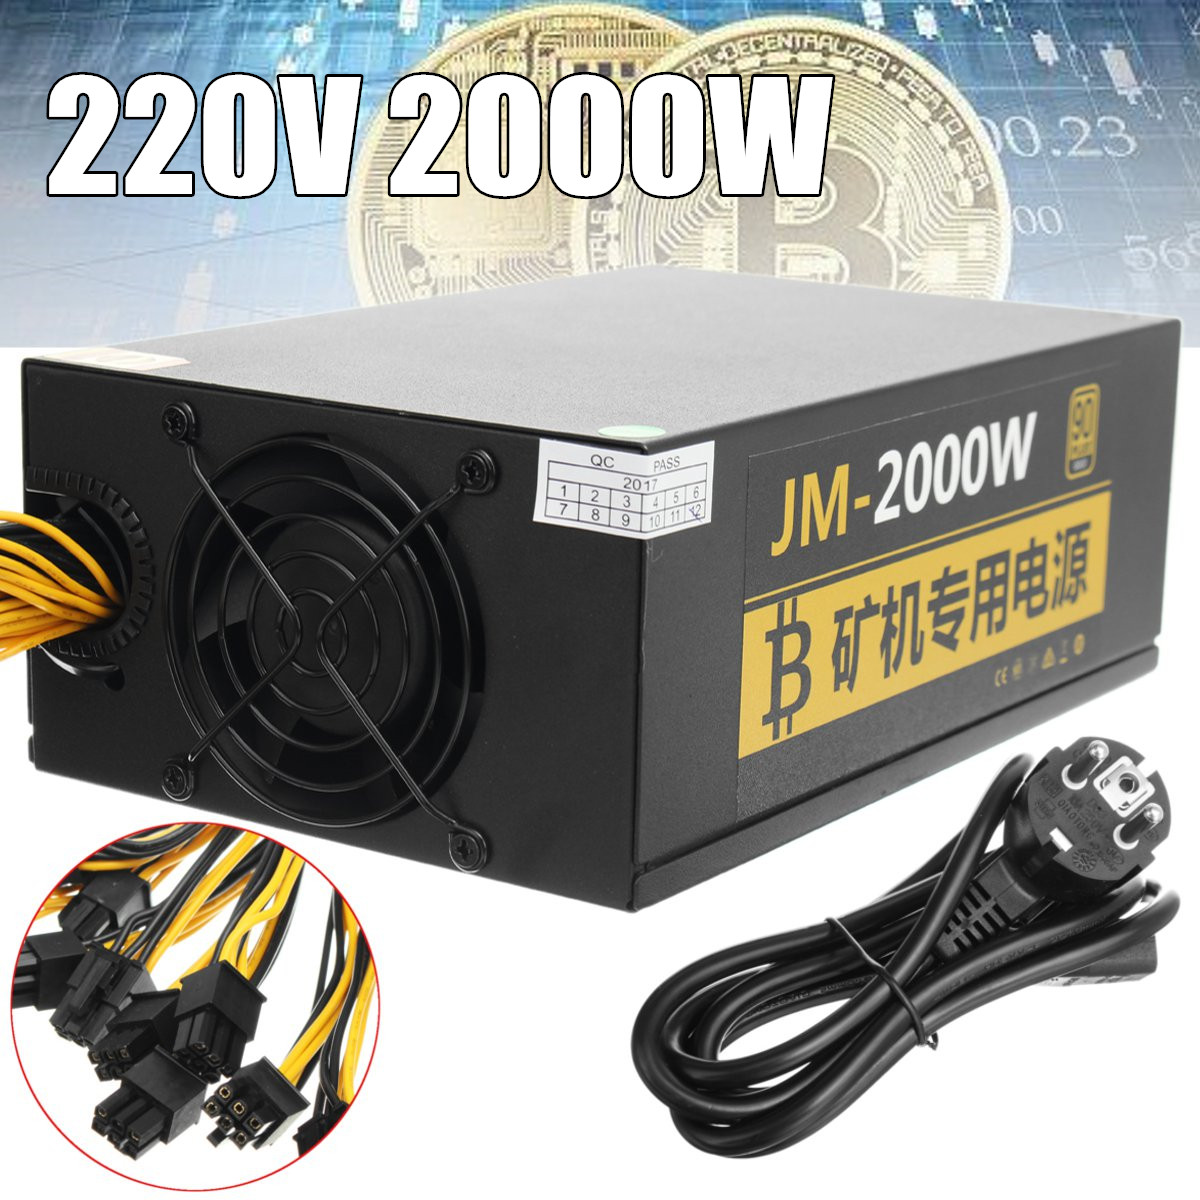 2000W Switching Power Supply 95% High Efficiency for Ethereum S9 S7 Rig Mining 180-260V for bitcoin miner asic bitcoin Mining 1800w switching power supply equipment 90 percent high efficiency power supply unit for ethereum s9 s7 l3 rig mining 180 260v